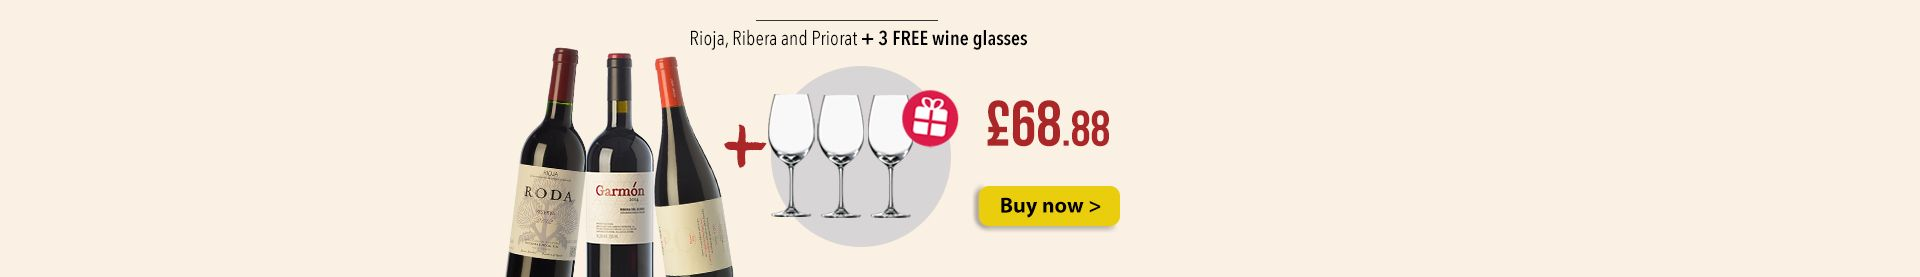 Rioja, Ribera and Priorat + 3 FREE wine glasses